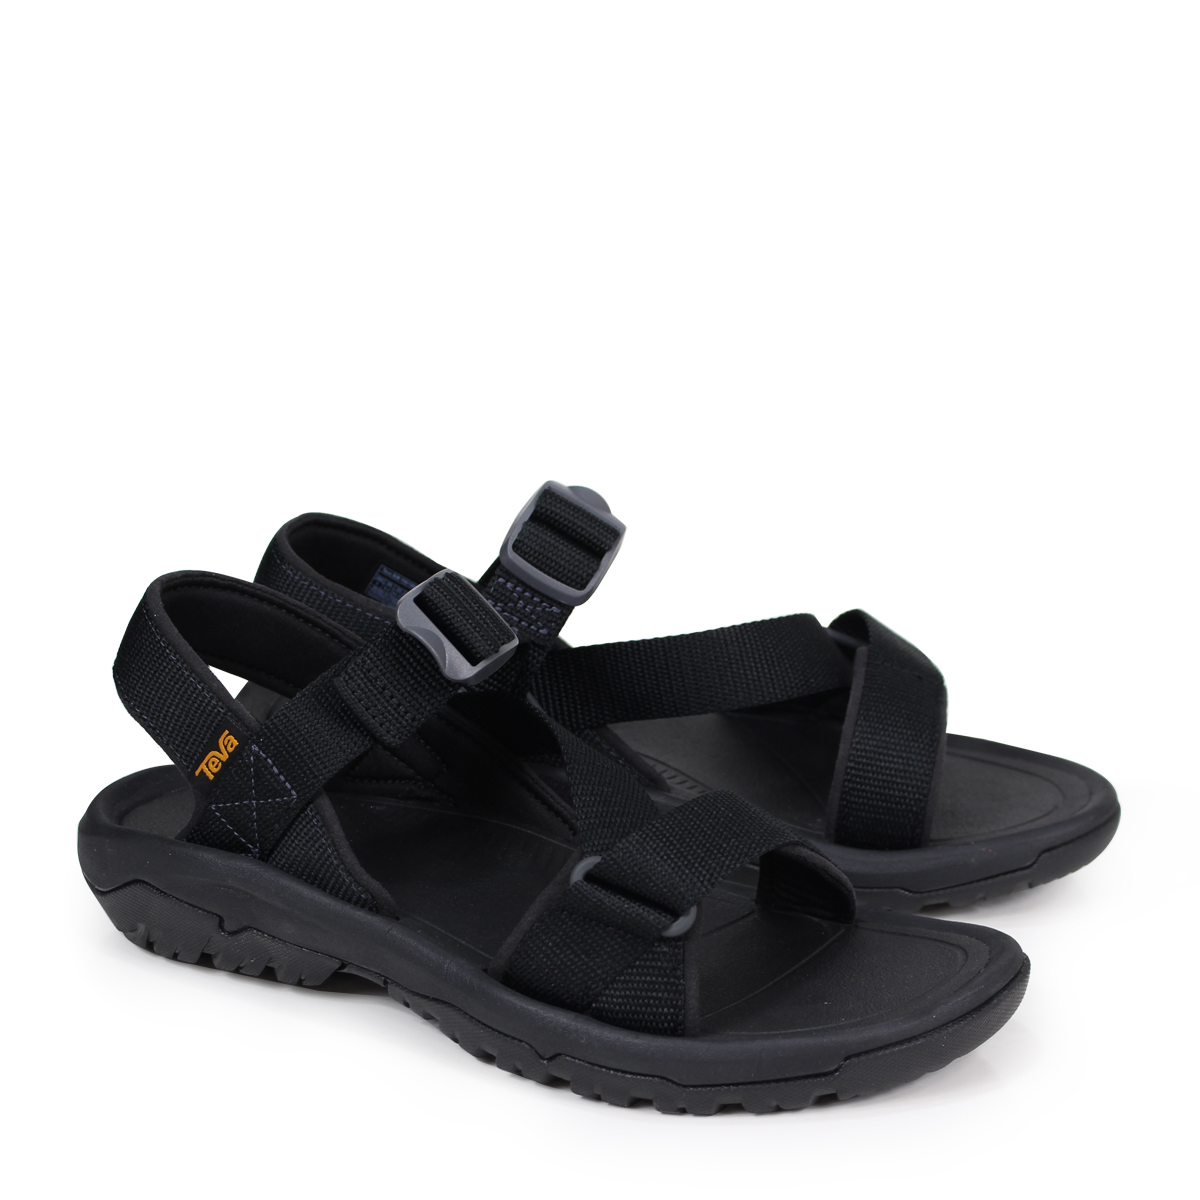 a1e834f42 ALLSPORTS  Teva HURRICANE CROSS STRAP Teva sandals men hurricane ...